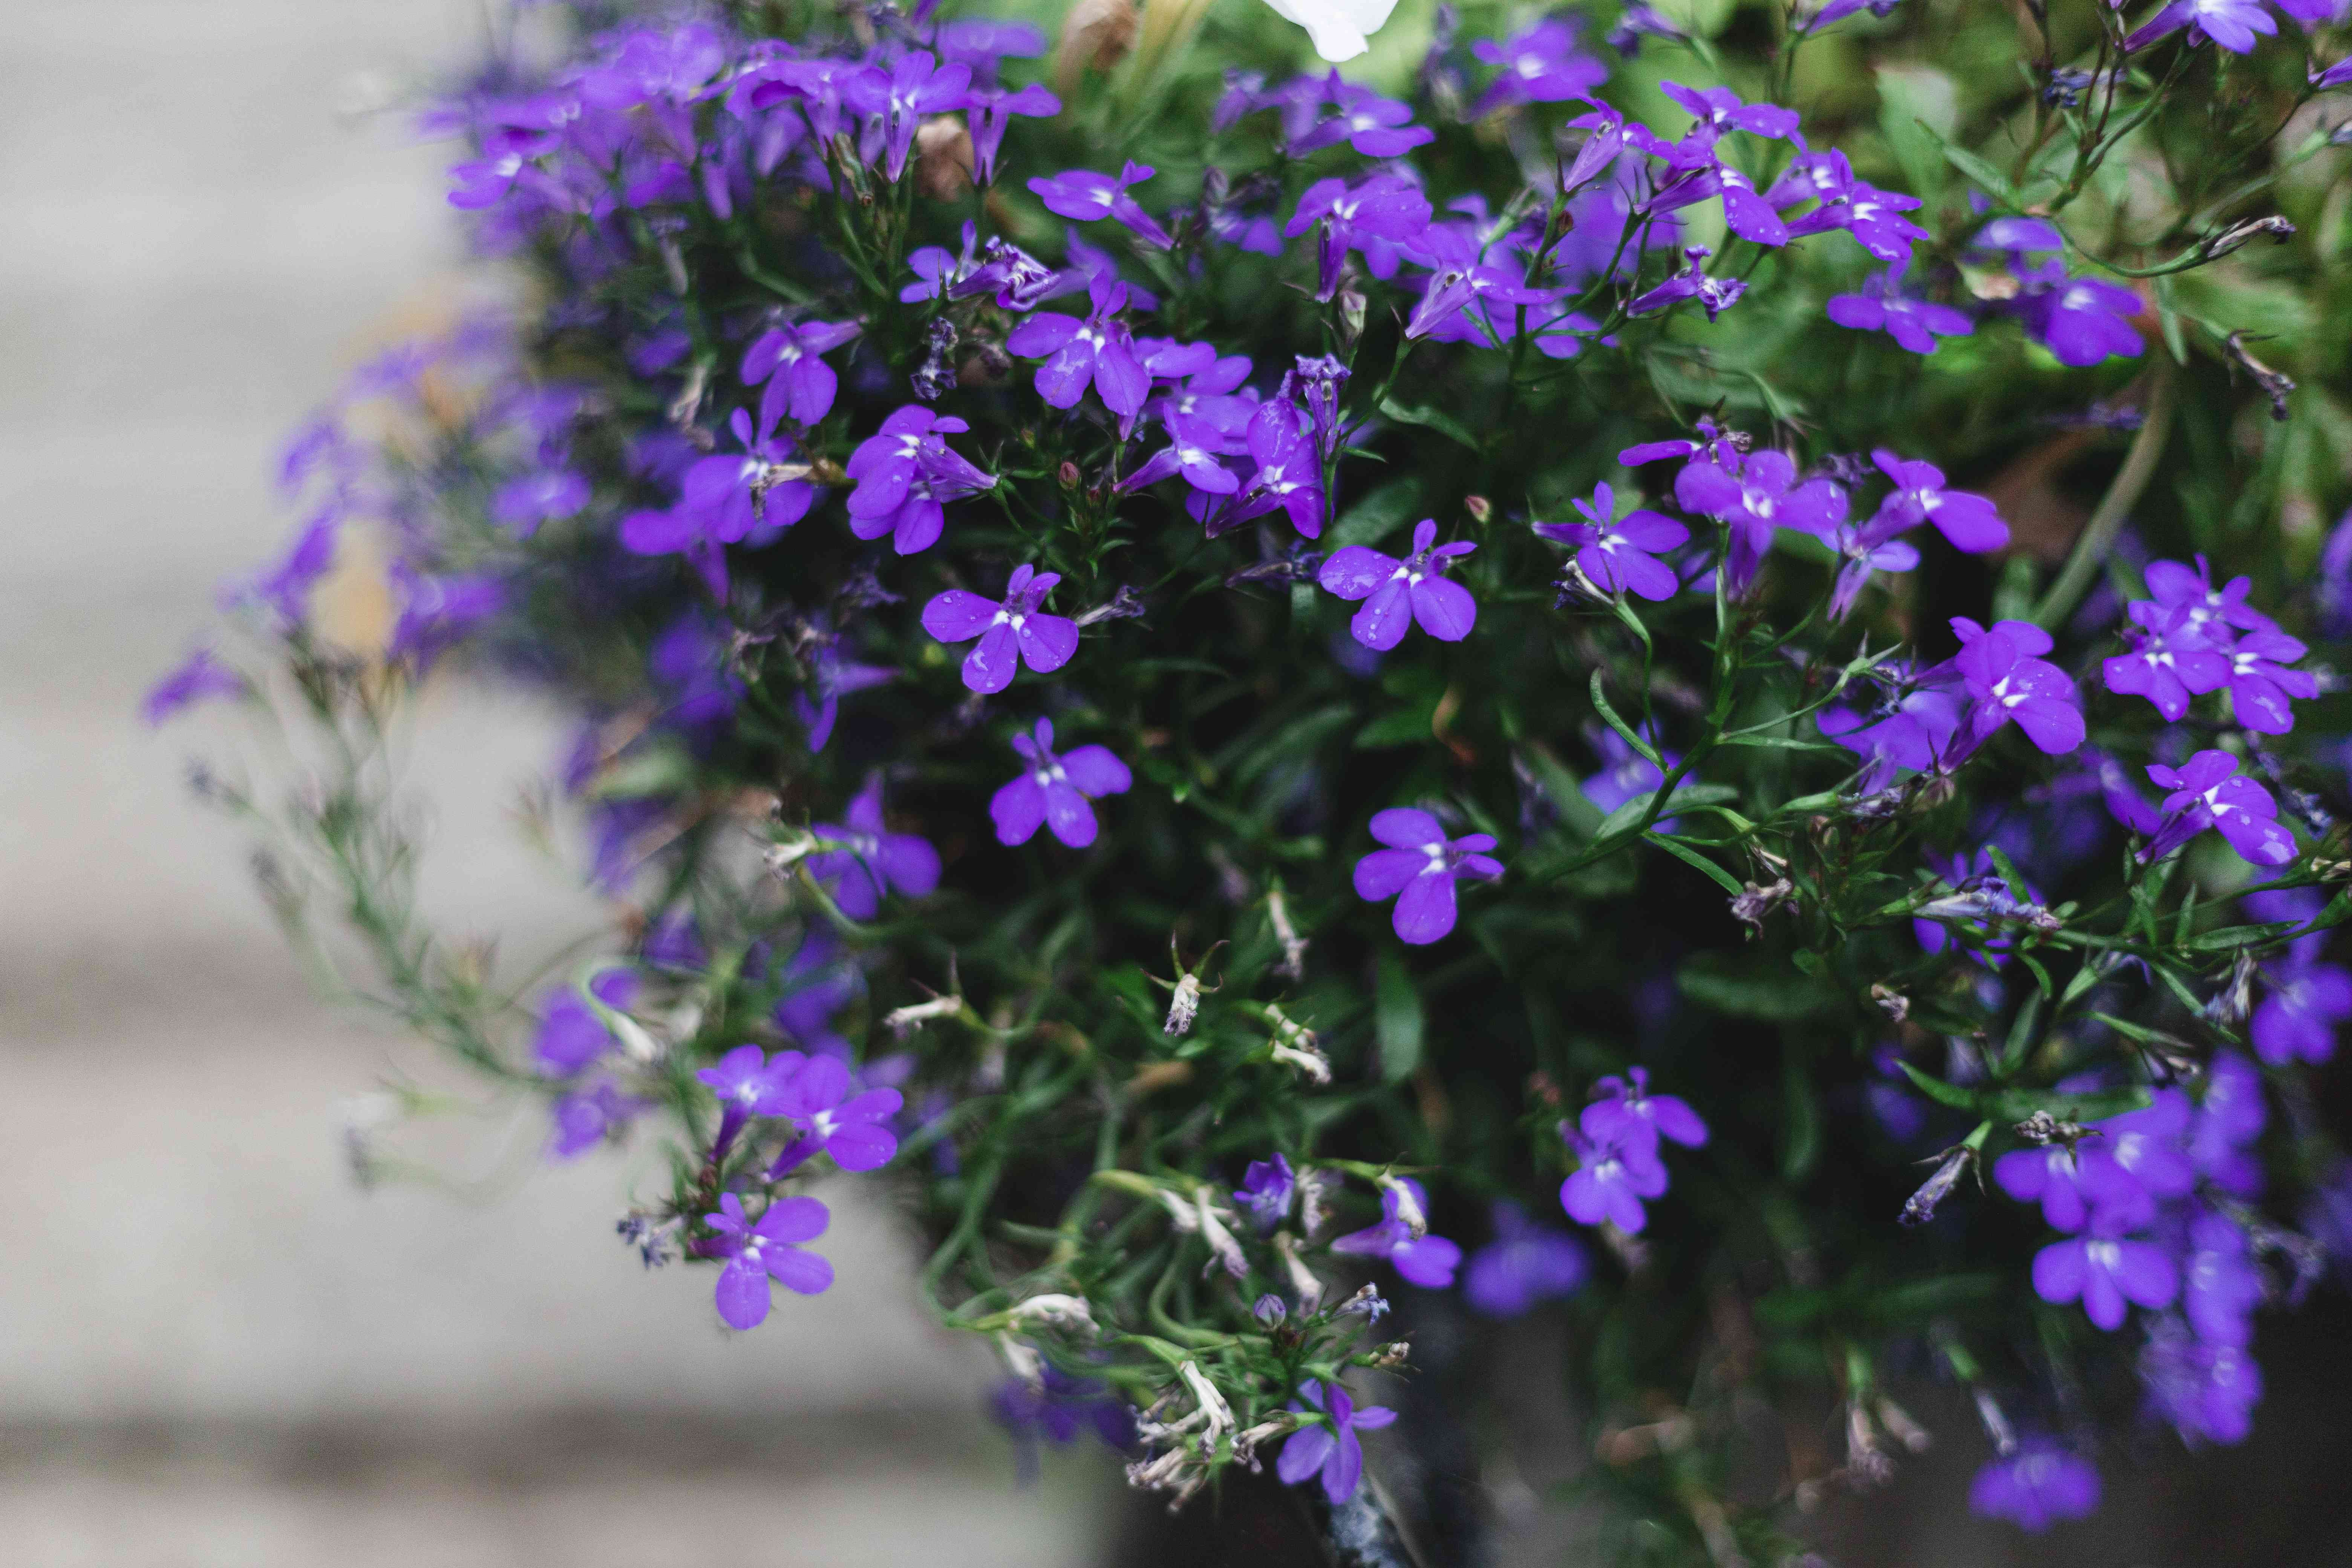 campanula from the side